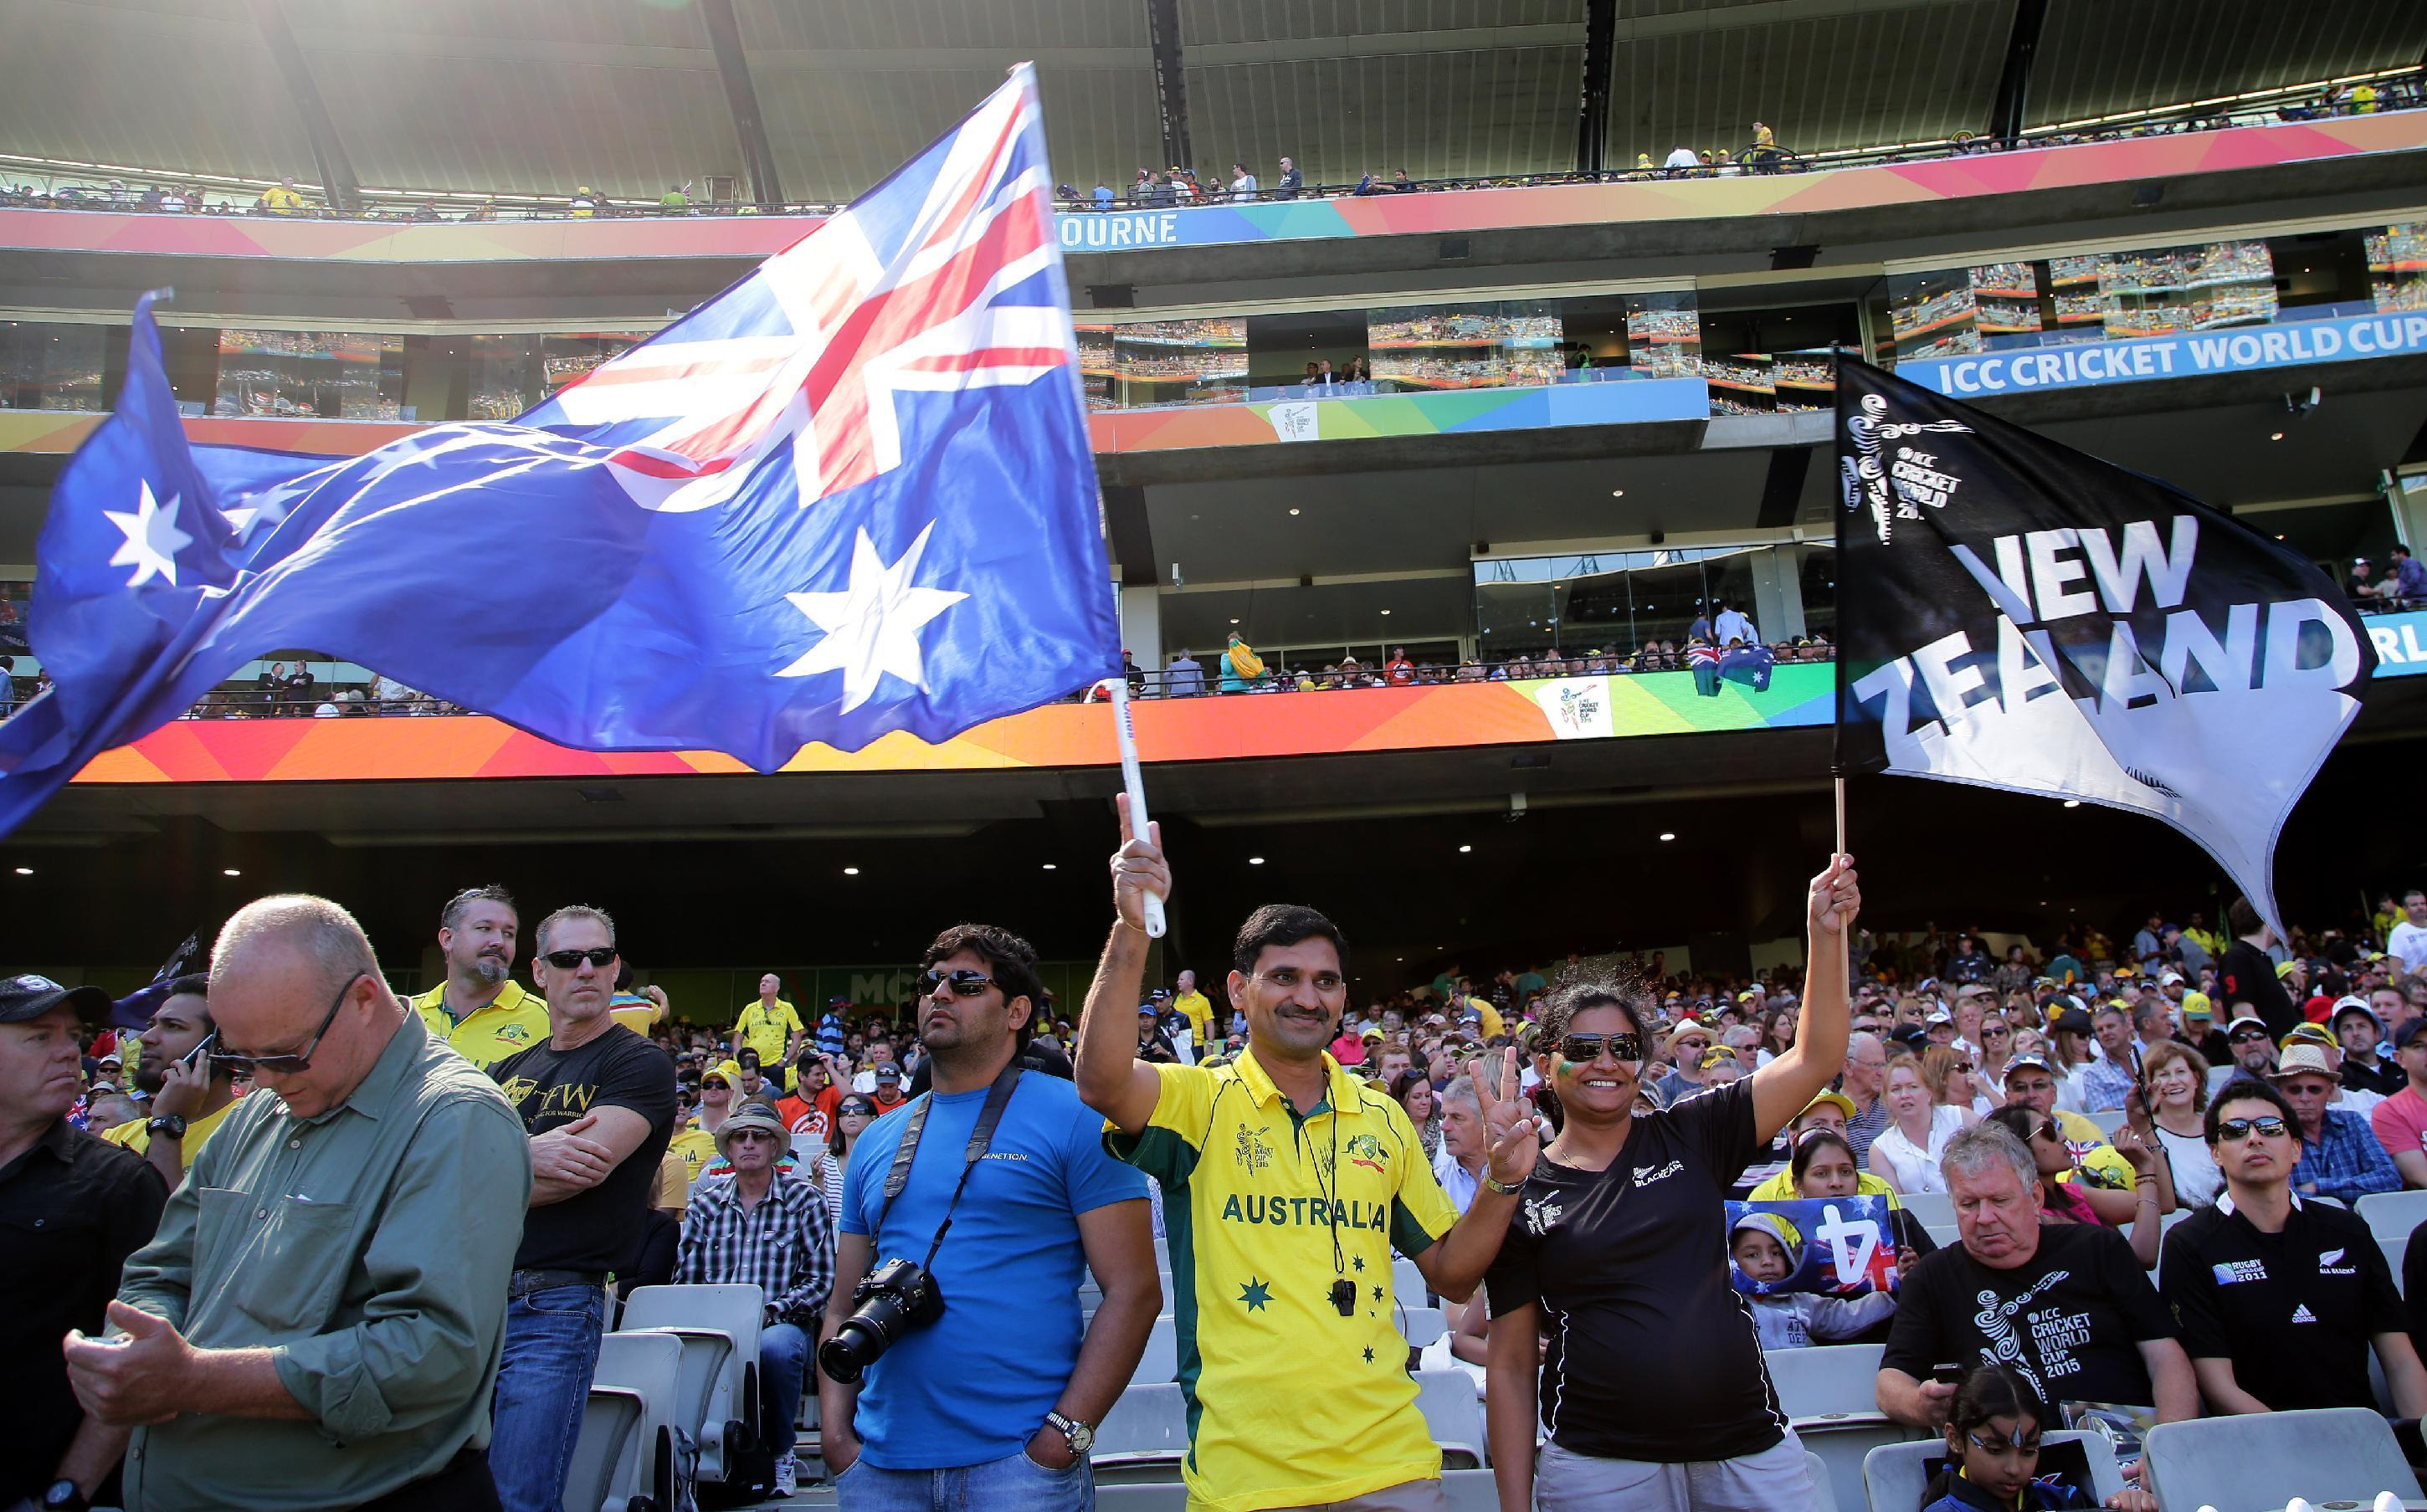 Record-setting MCG crowd on hand for Cricket World Cup final